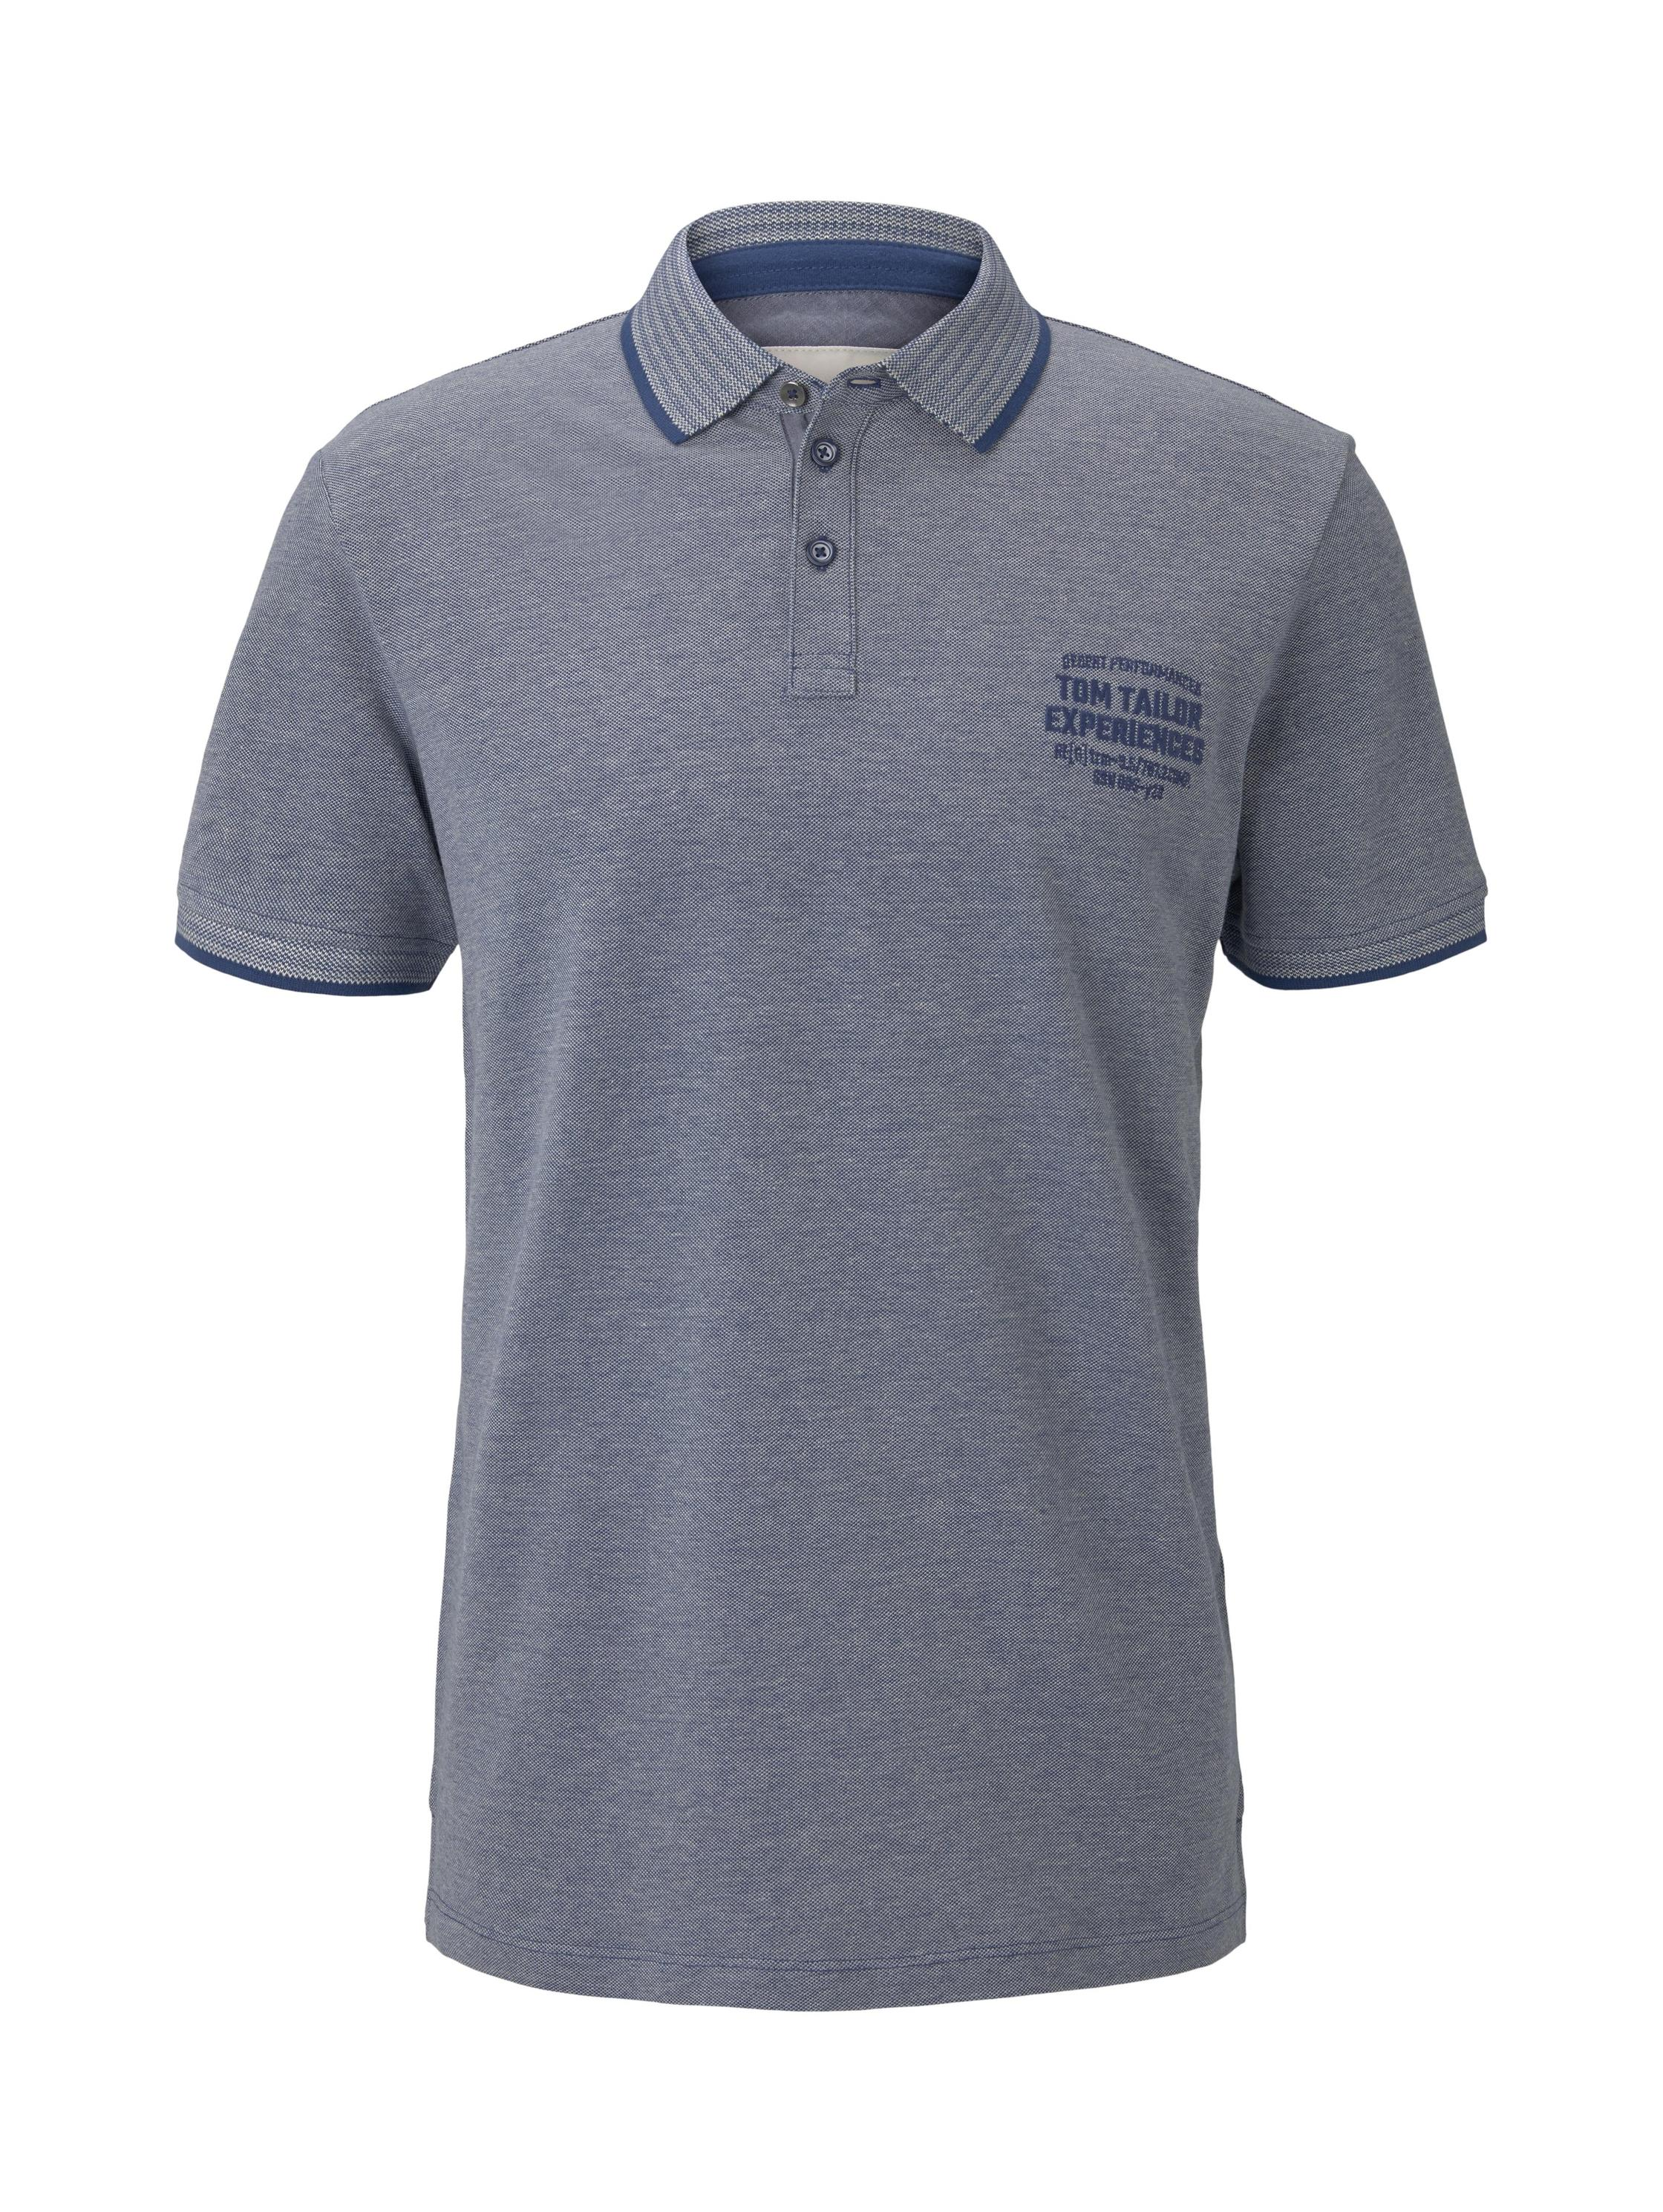 polo two tone with tipping, blue twotone structure